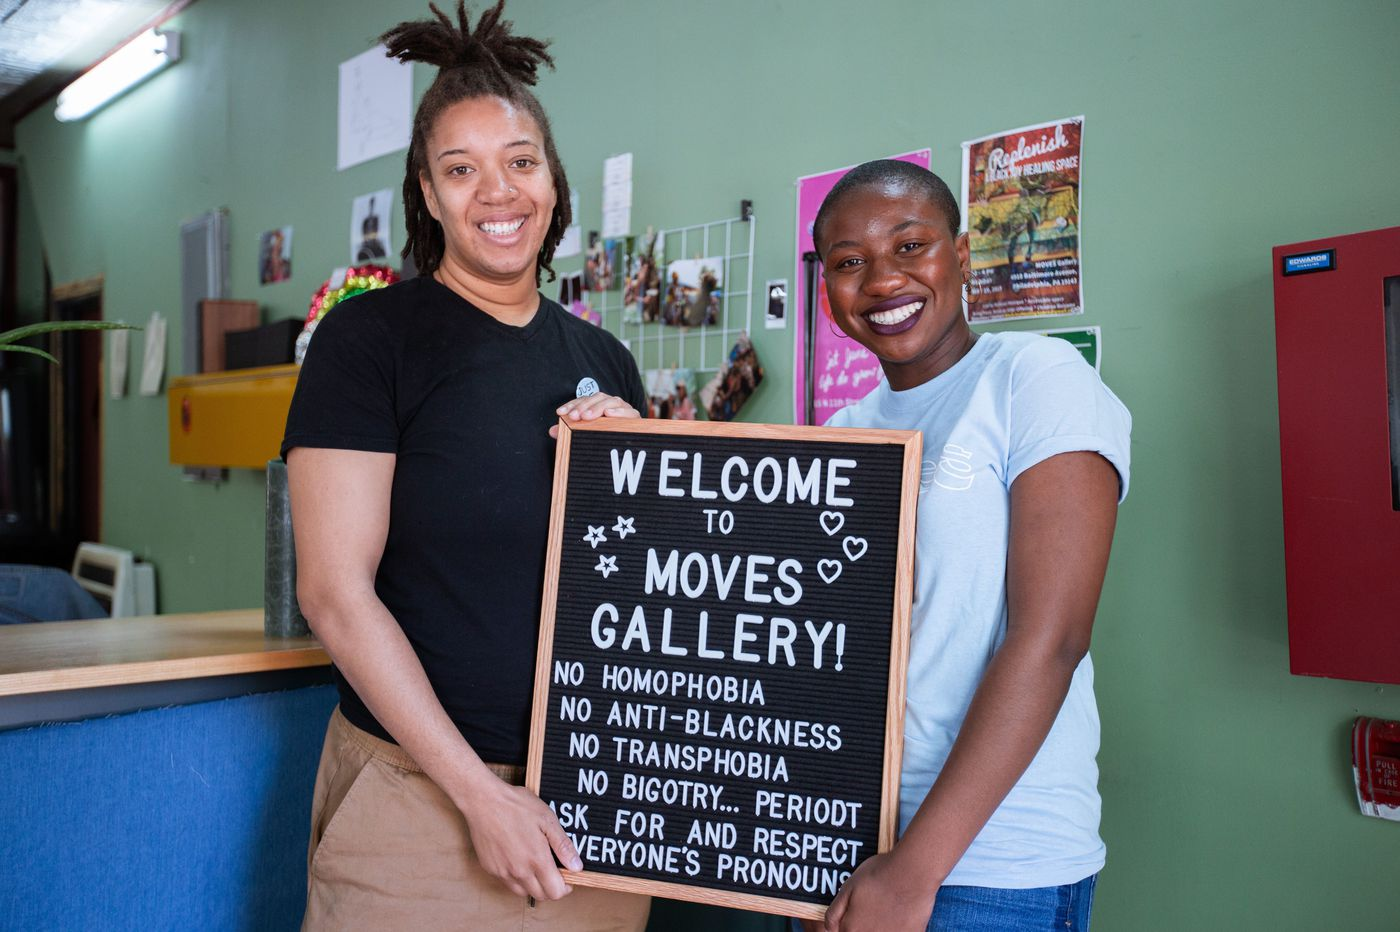 MOVES provides queer and trans people of color with community and a more inclusive Pride festival